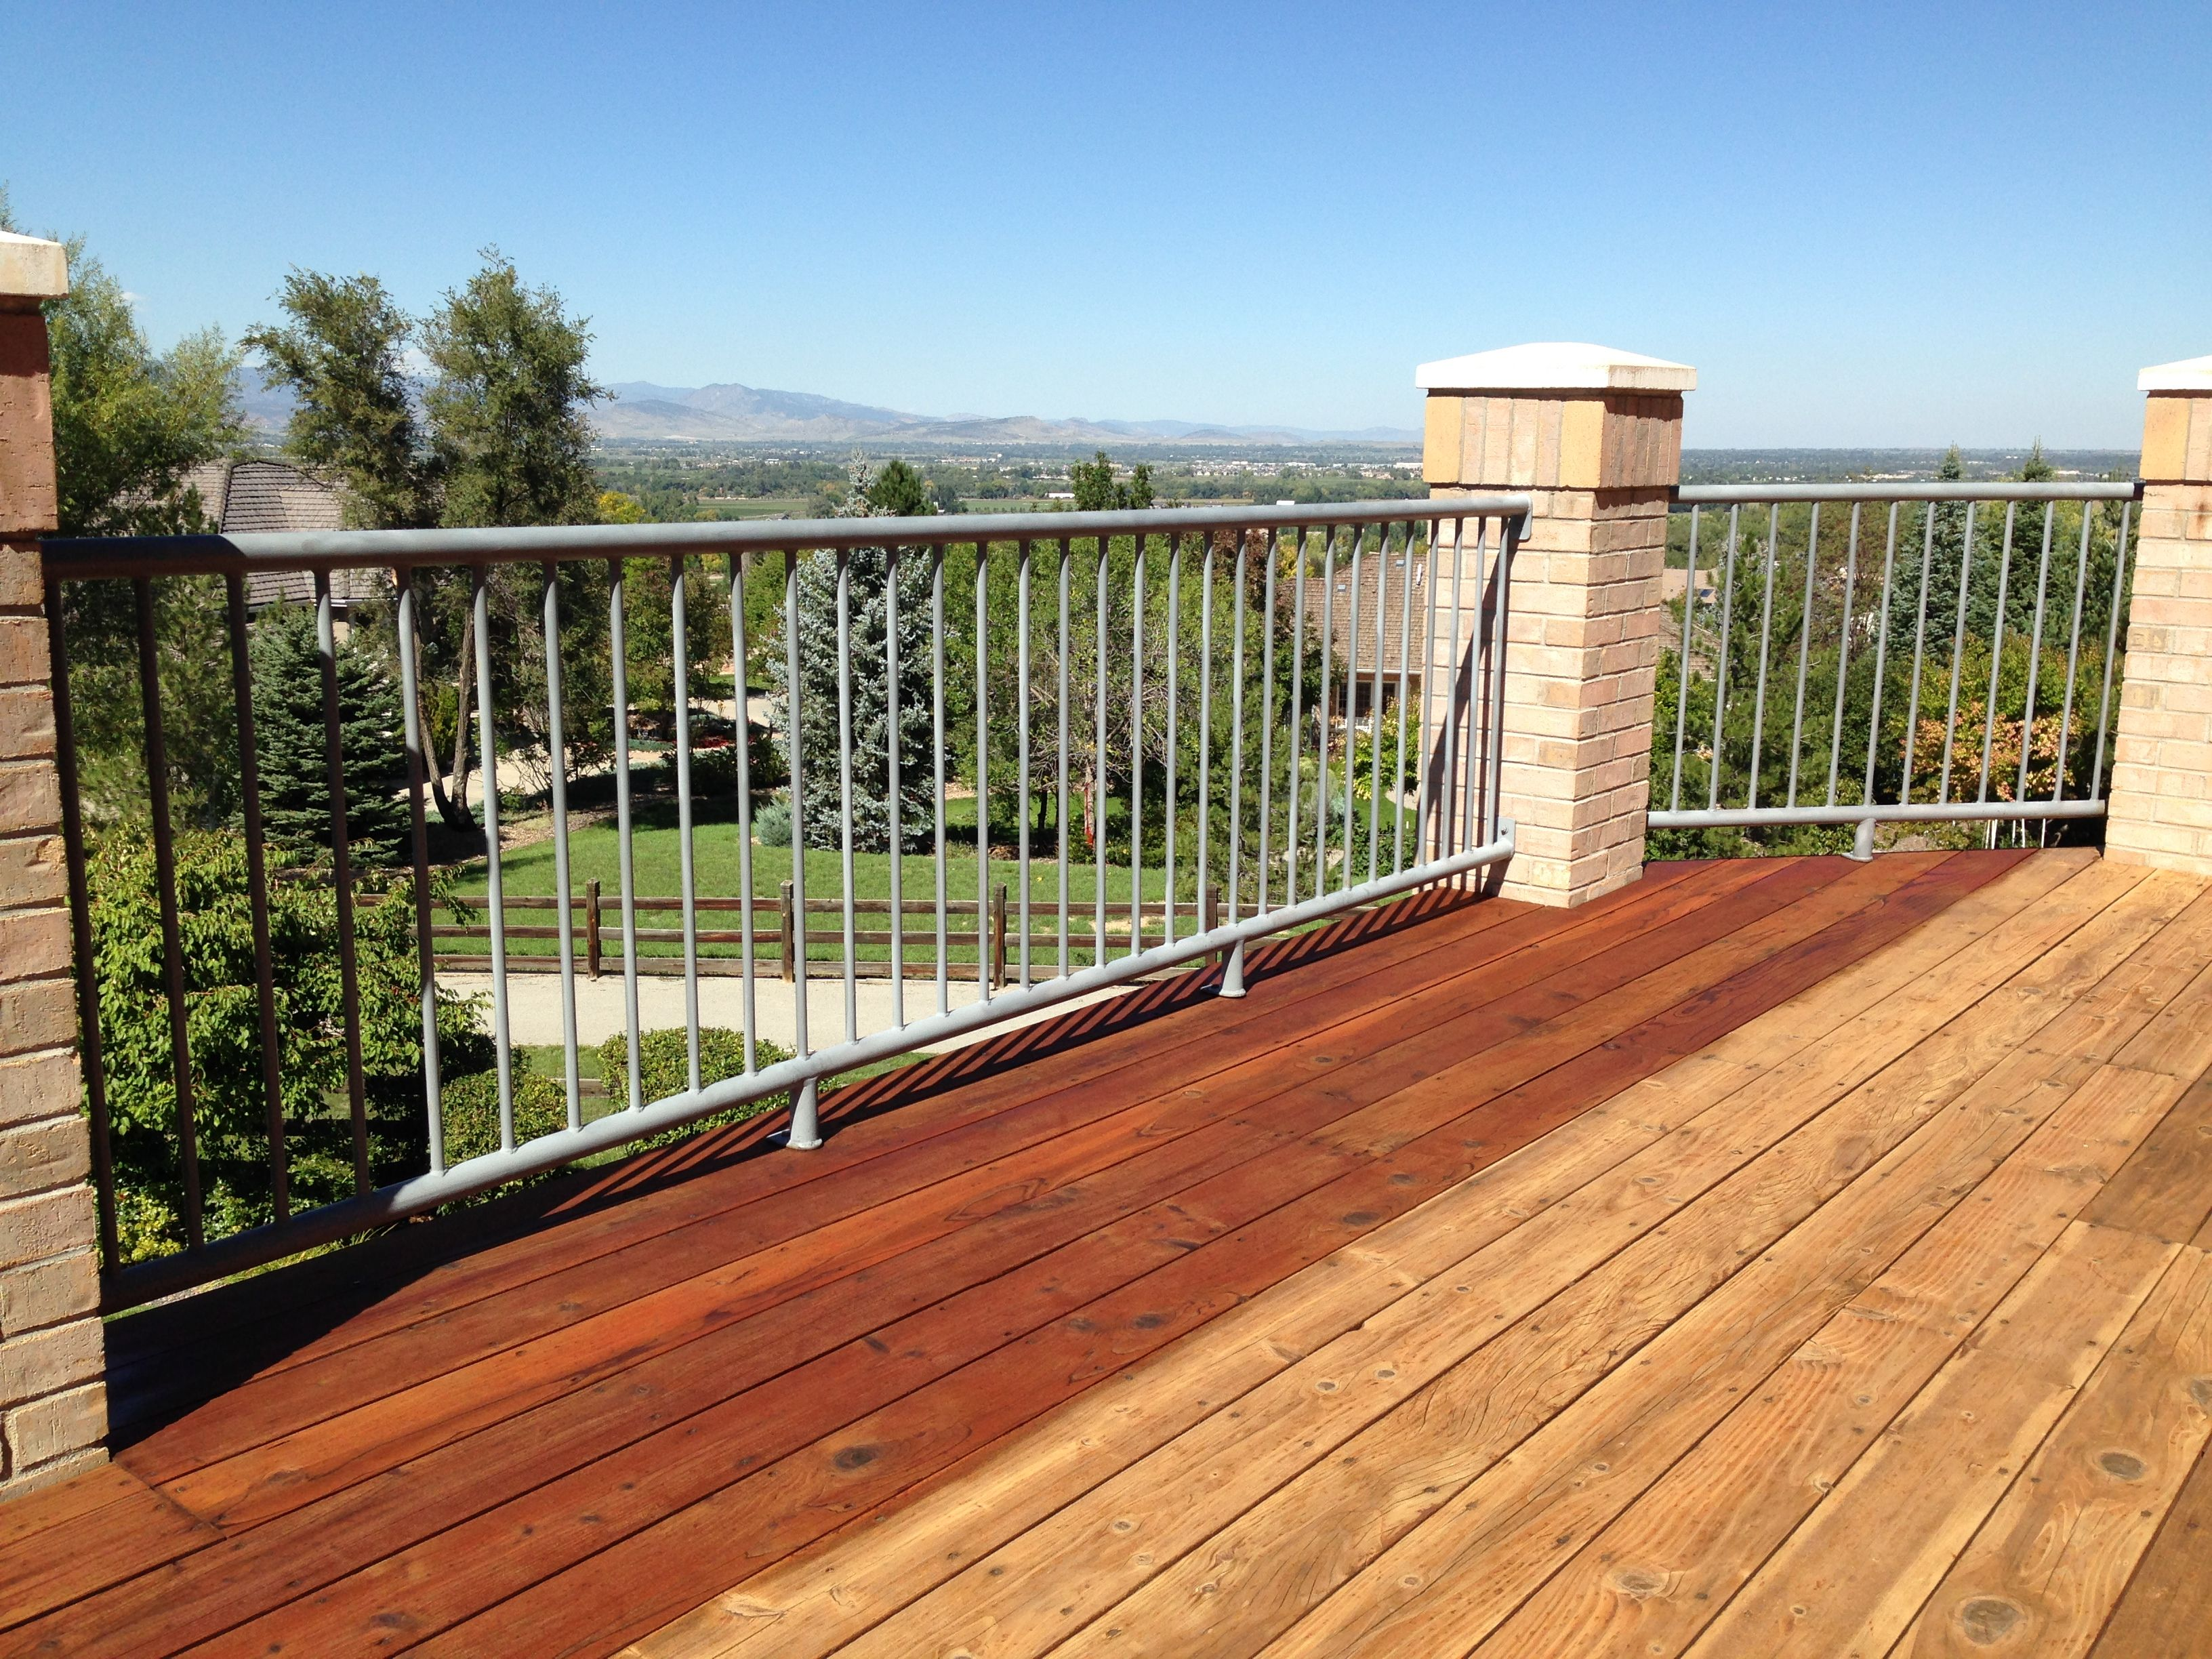 Boodge Deck Stain In Redwood Half Stained Deck Stain Colors Staining Deck Best Deck Stain